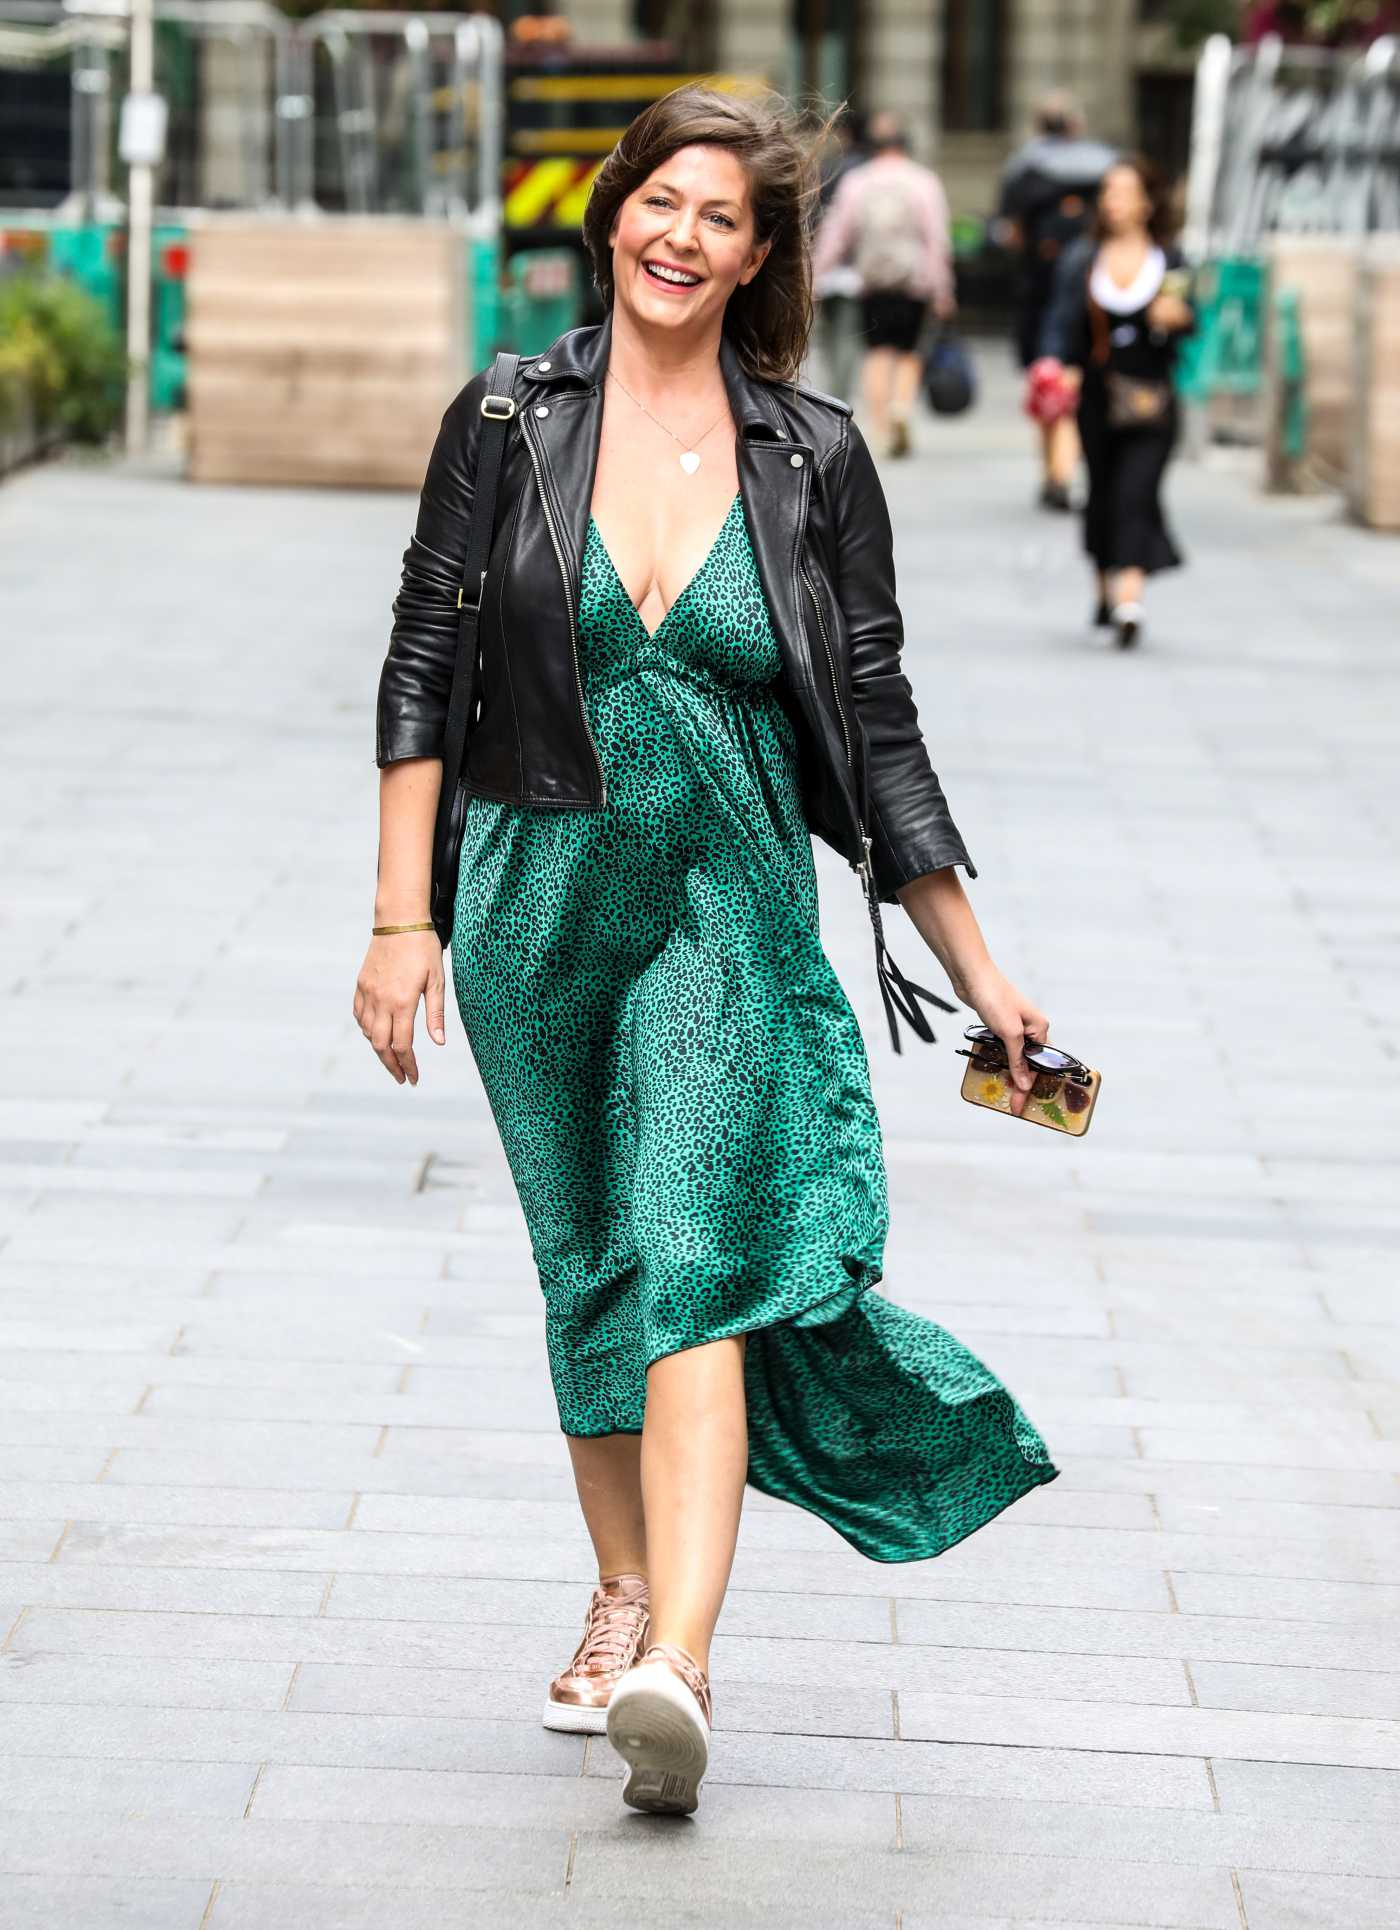 Lucy Horobin in a Green Animal Print Dress Arrives at the Global Radio Studios in London 07/03/2020